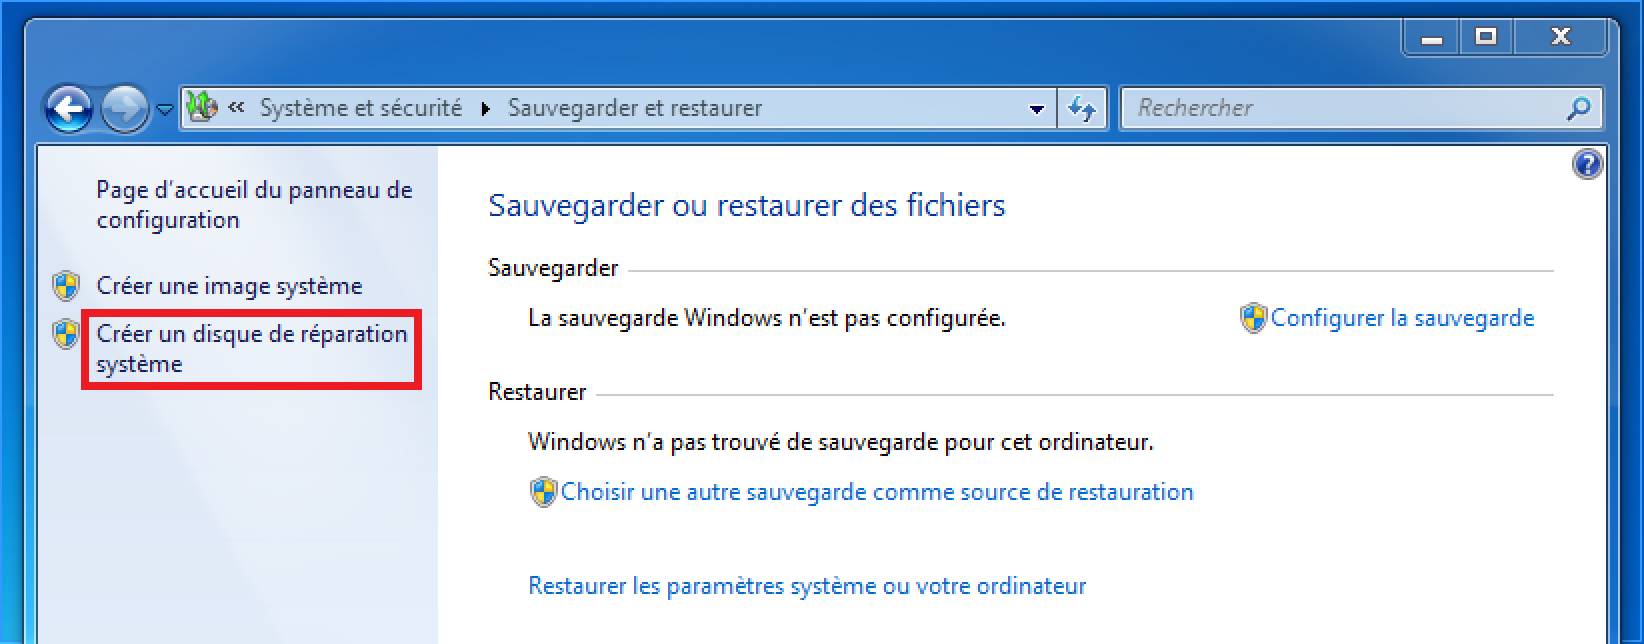 Cr er un disque de r paration de windows 7 geek on web for Ouvrir fenetre dos windows 7